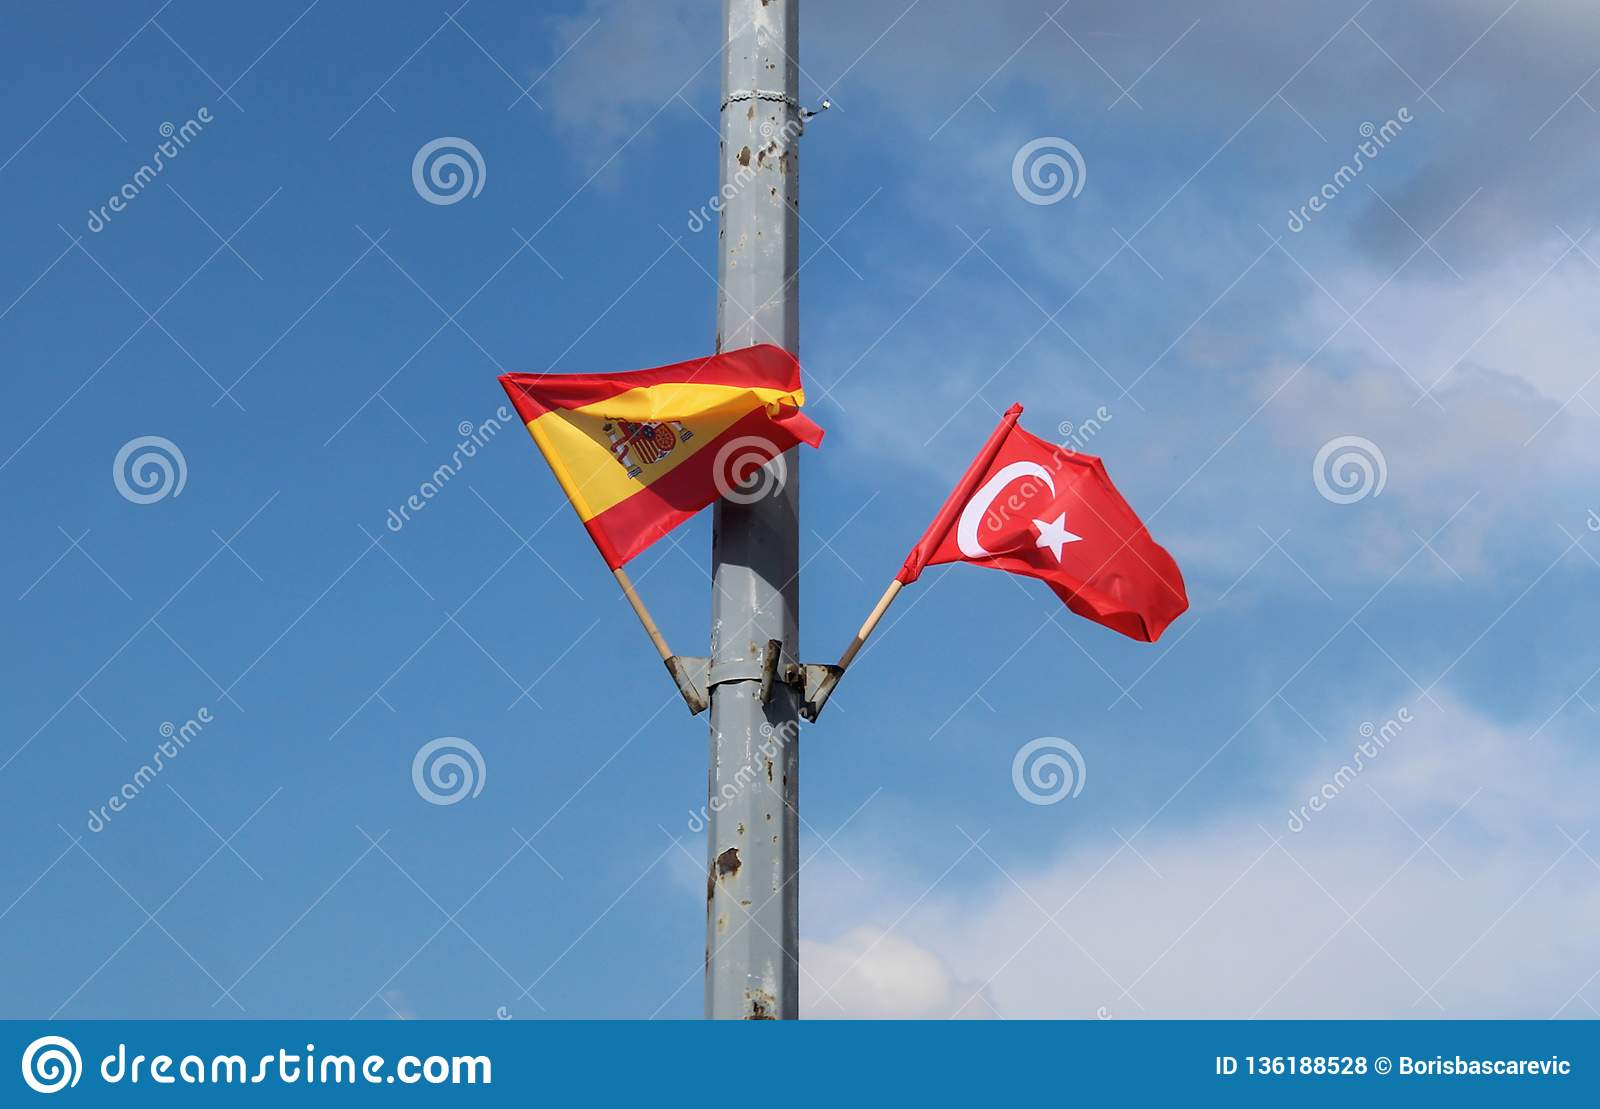 Spanish and Turkish flags in the flagpole on the street lantern with the blue sky in the background